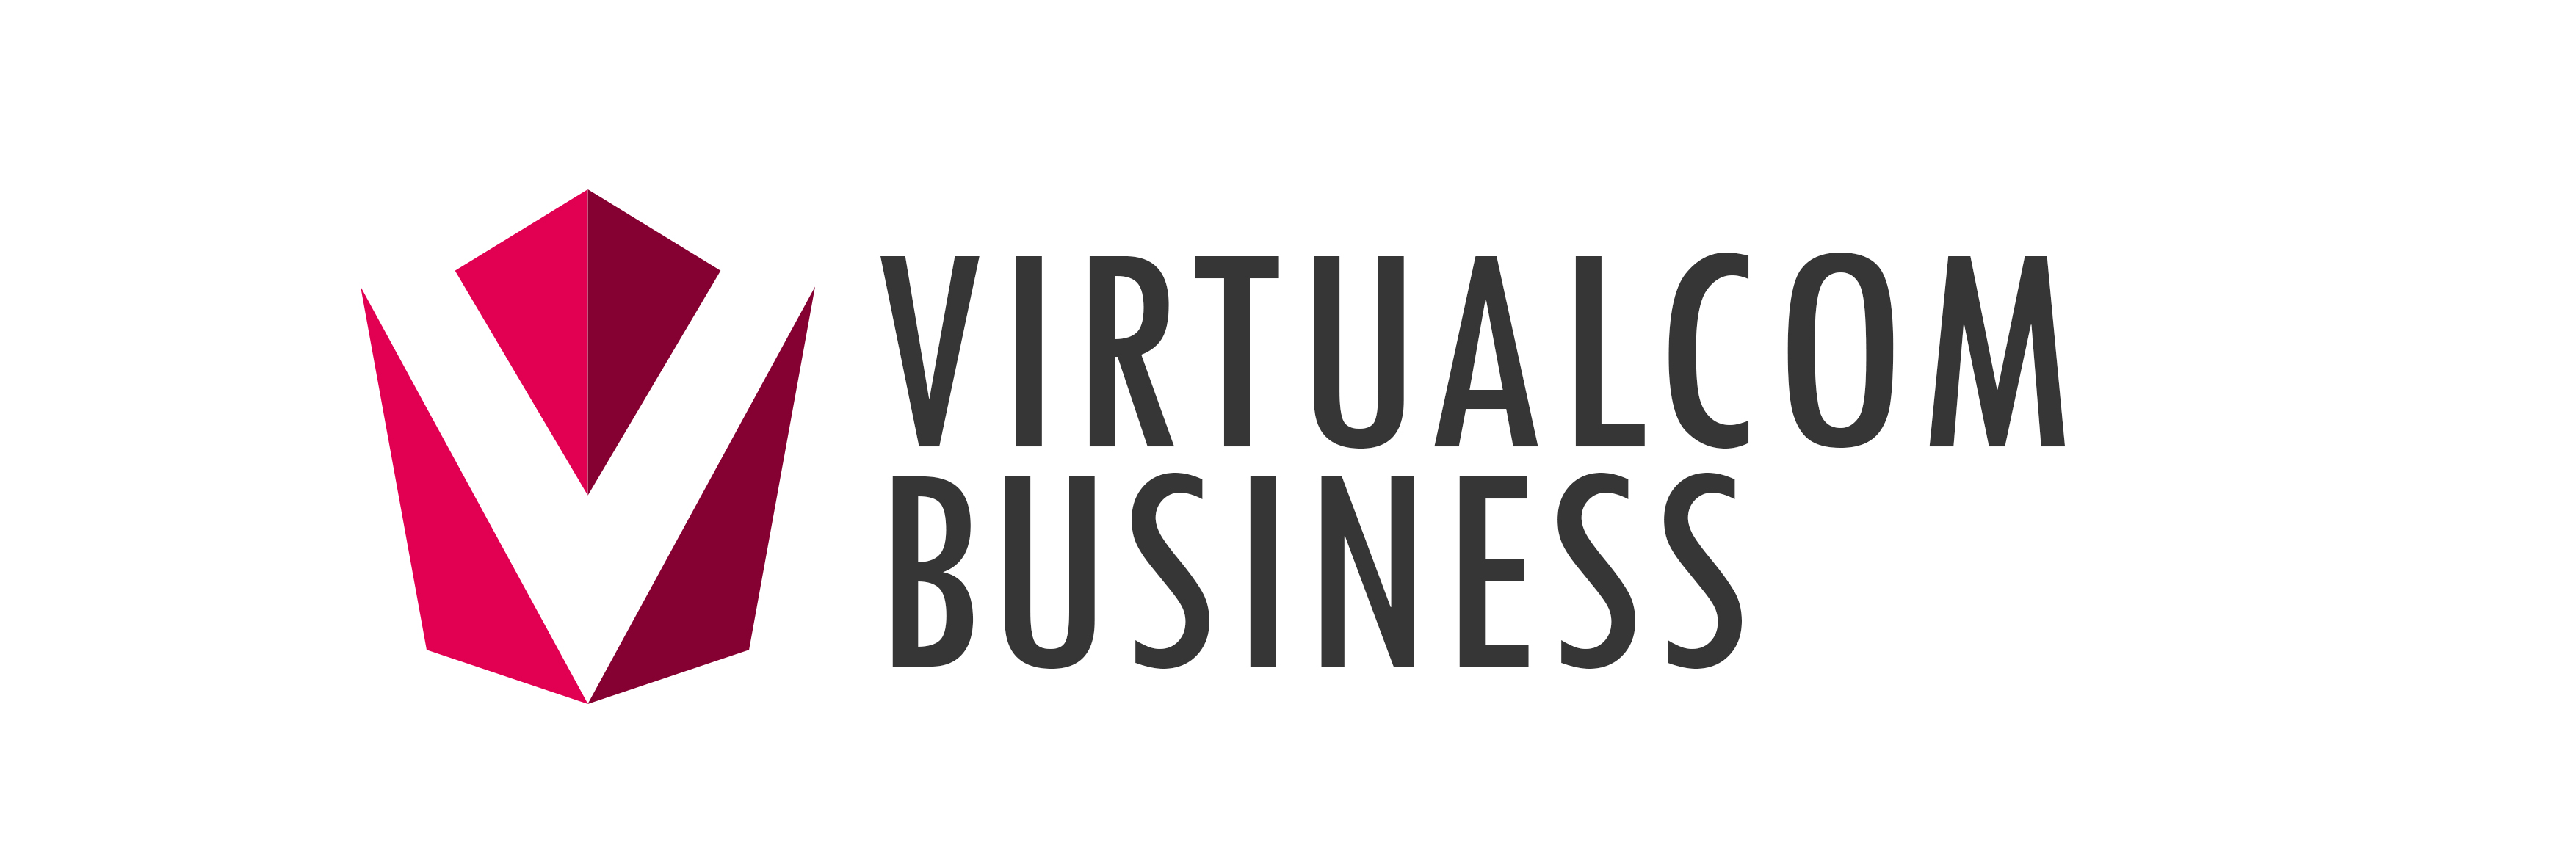 Virtualcom Business Kft.